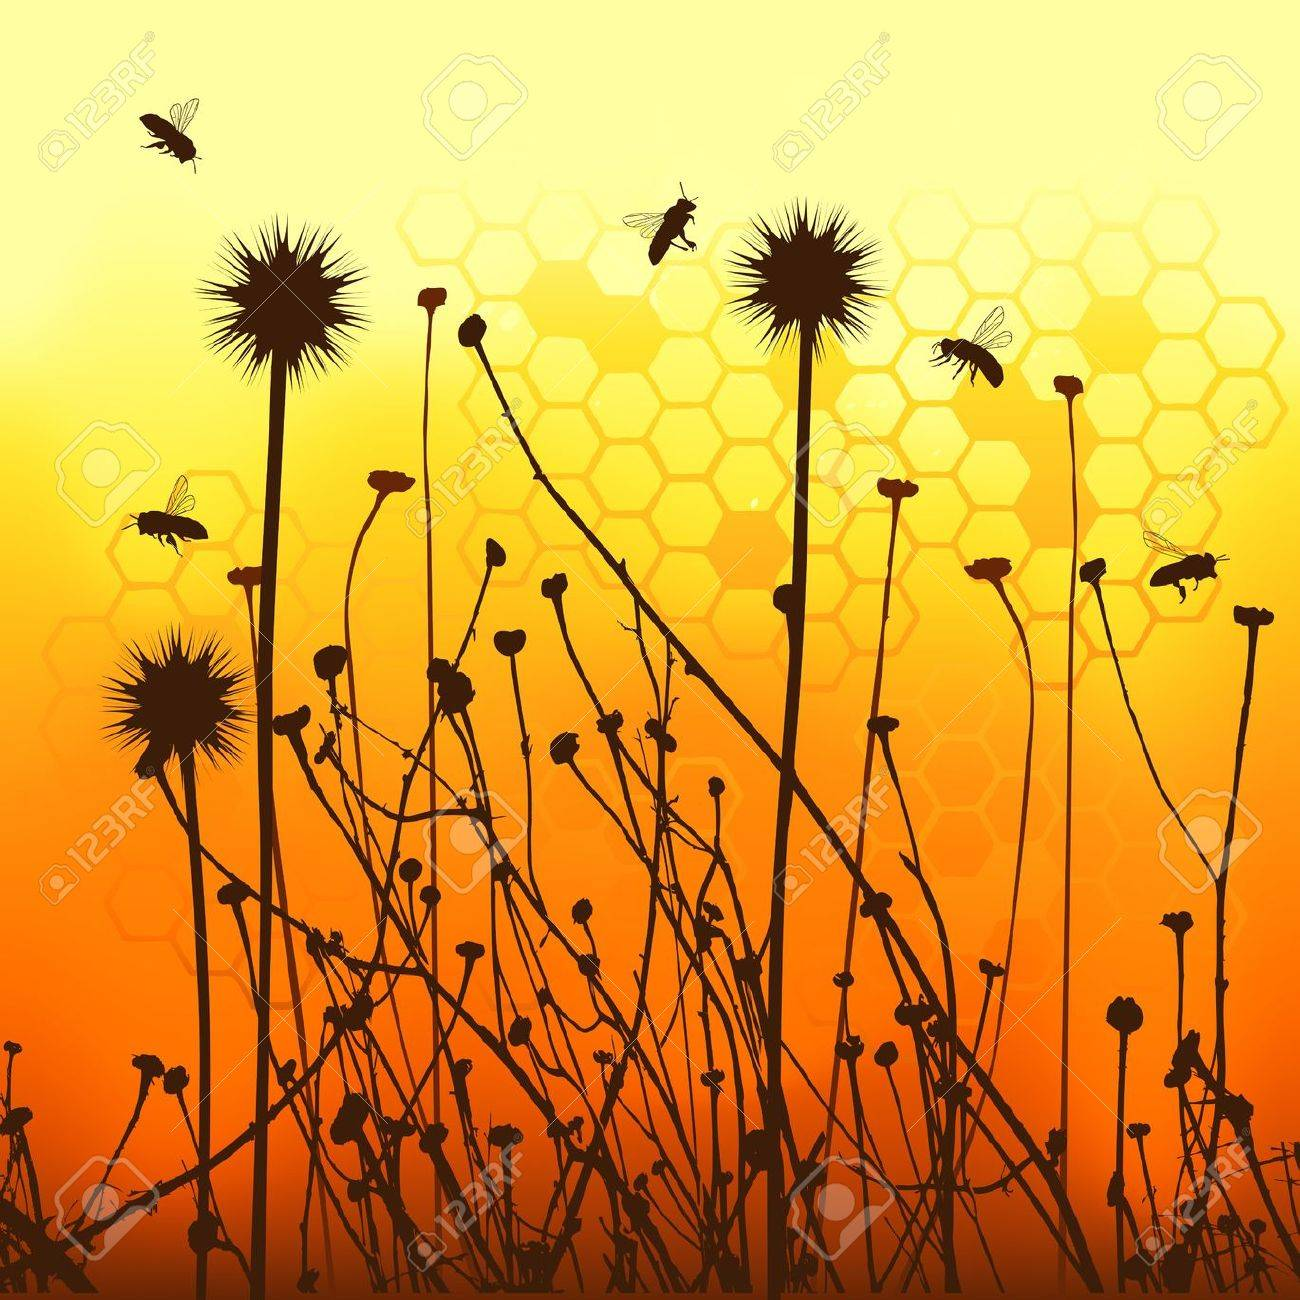 vector grass silhouettes backgrounds and bees Stock Vector - 12804958